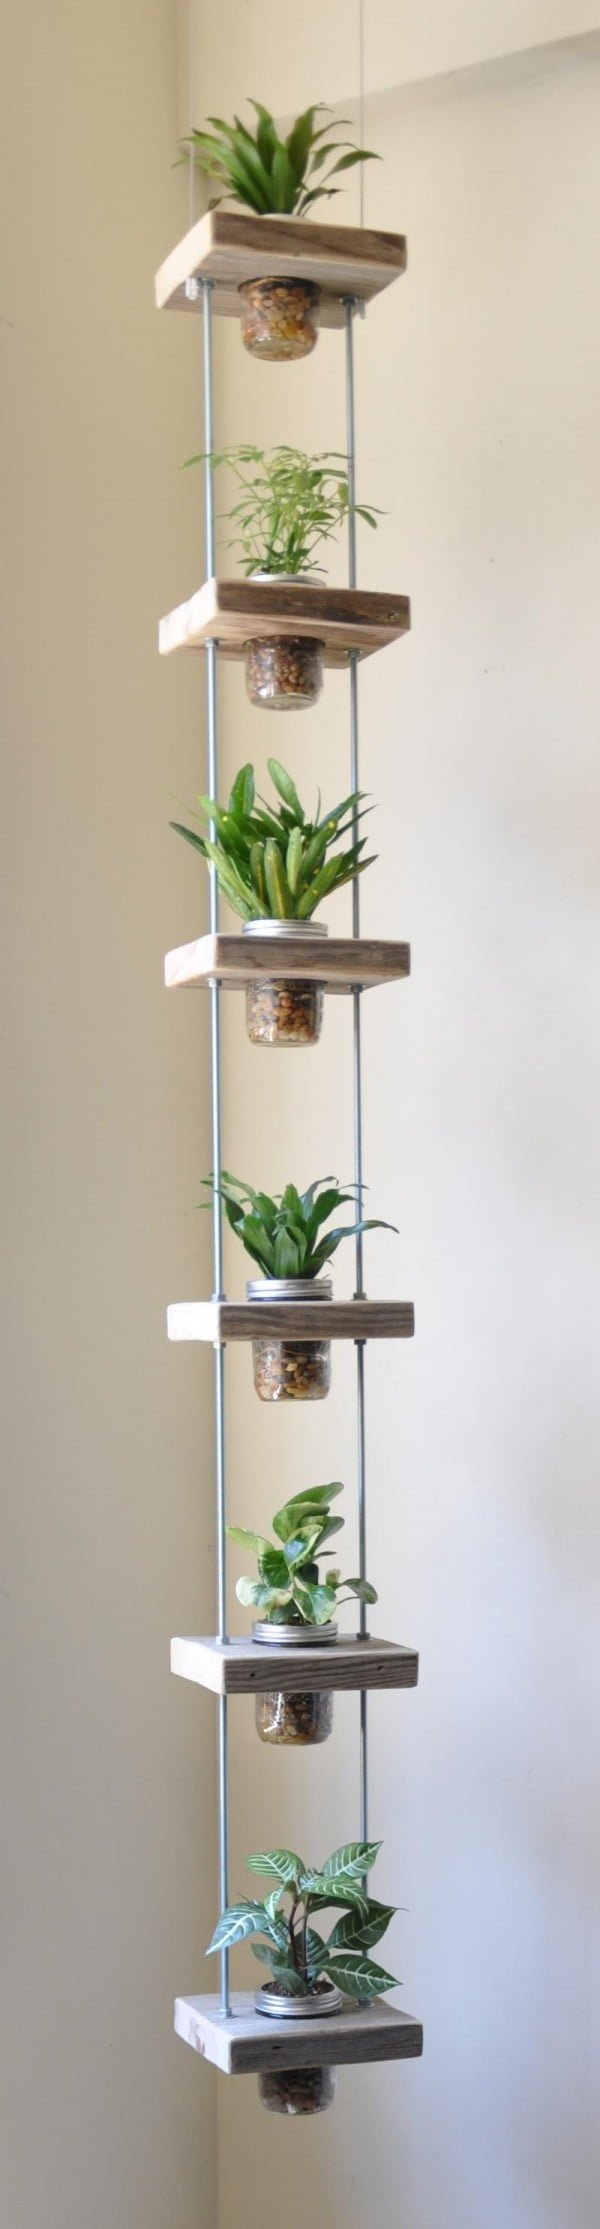 How to build this DIY vertical jar herb garden